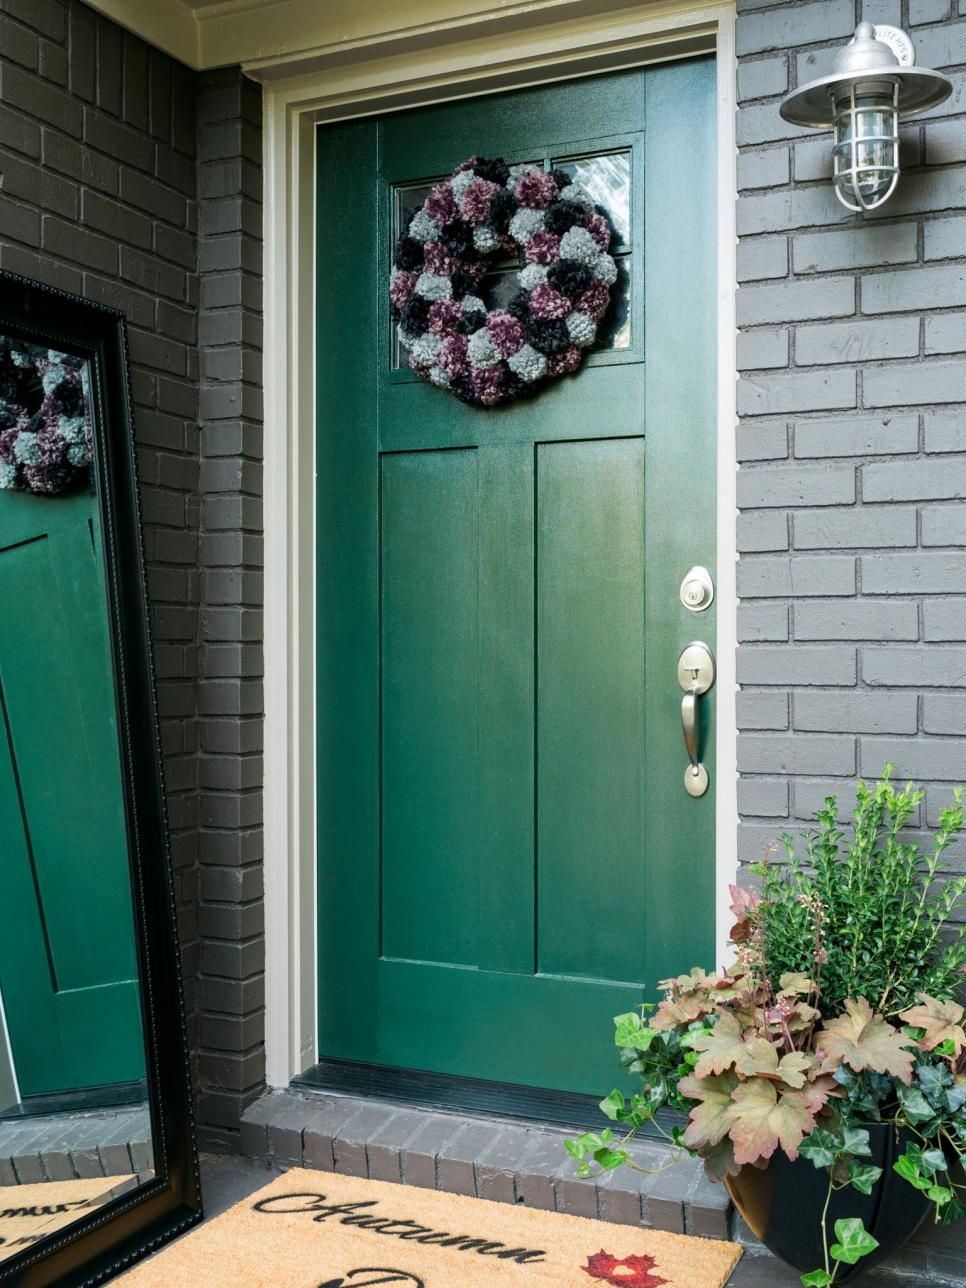 The Experts At Hgtv Com Share Easy Exterior Changes You Can Make To Your Home To Green Front Doors Front Door Colors Painted Front Doors